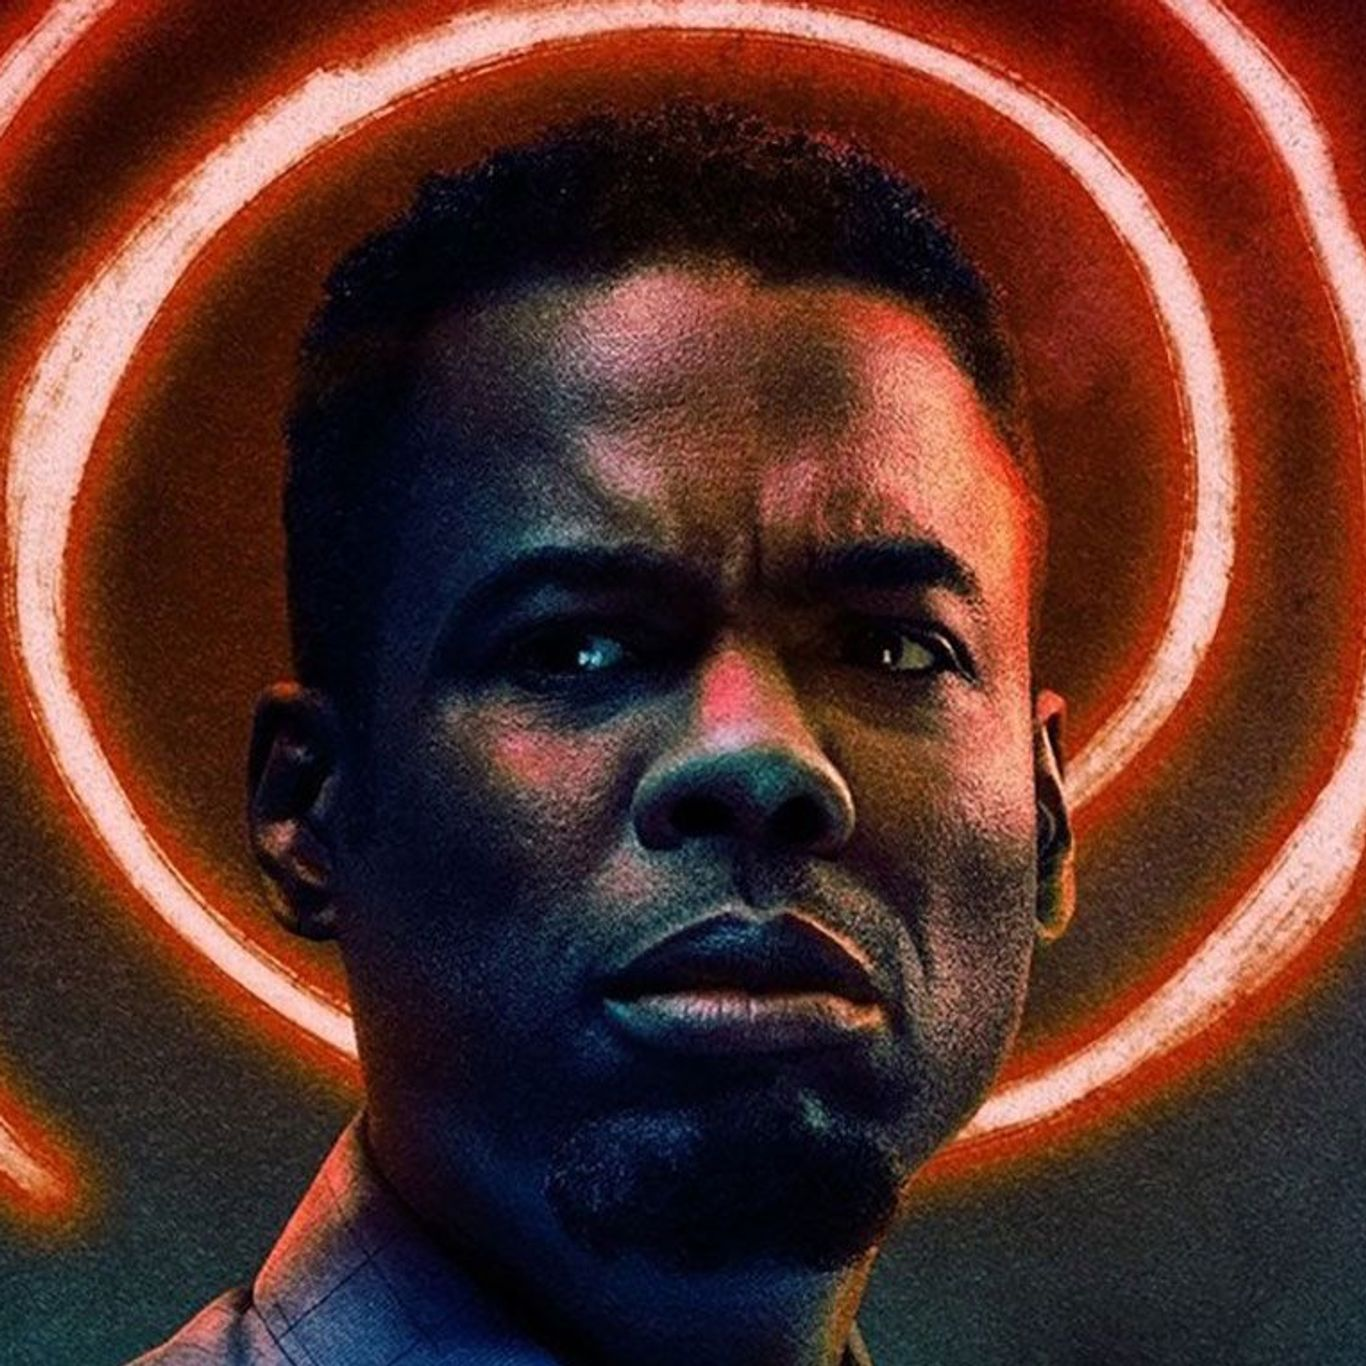 """SNL Players Go Dramatic - Chris Rock in poster art for """"Spiral."""""""